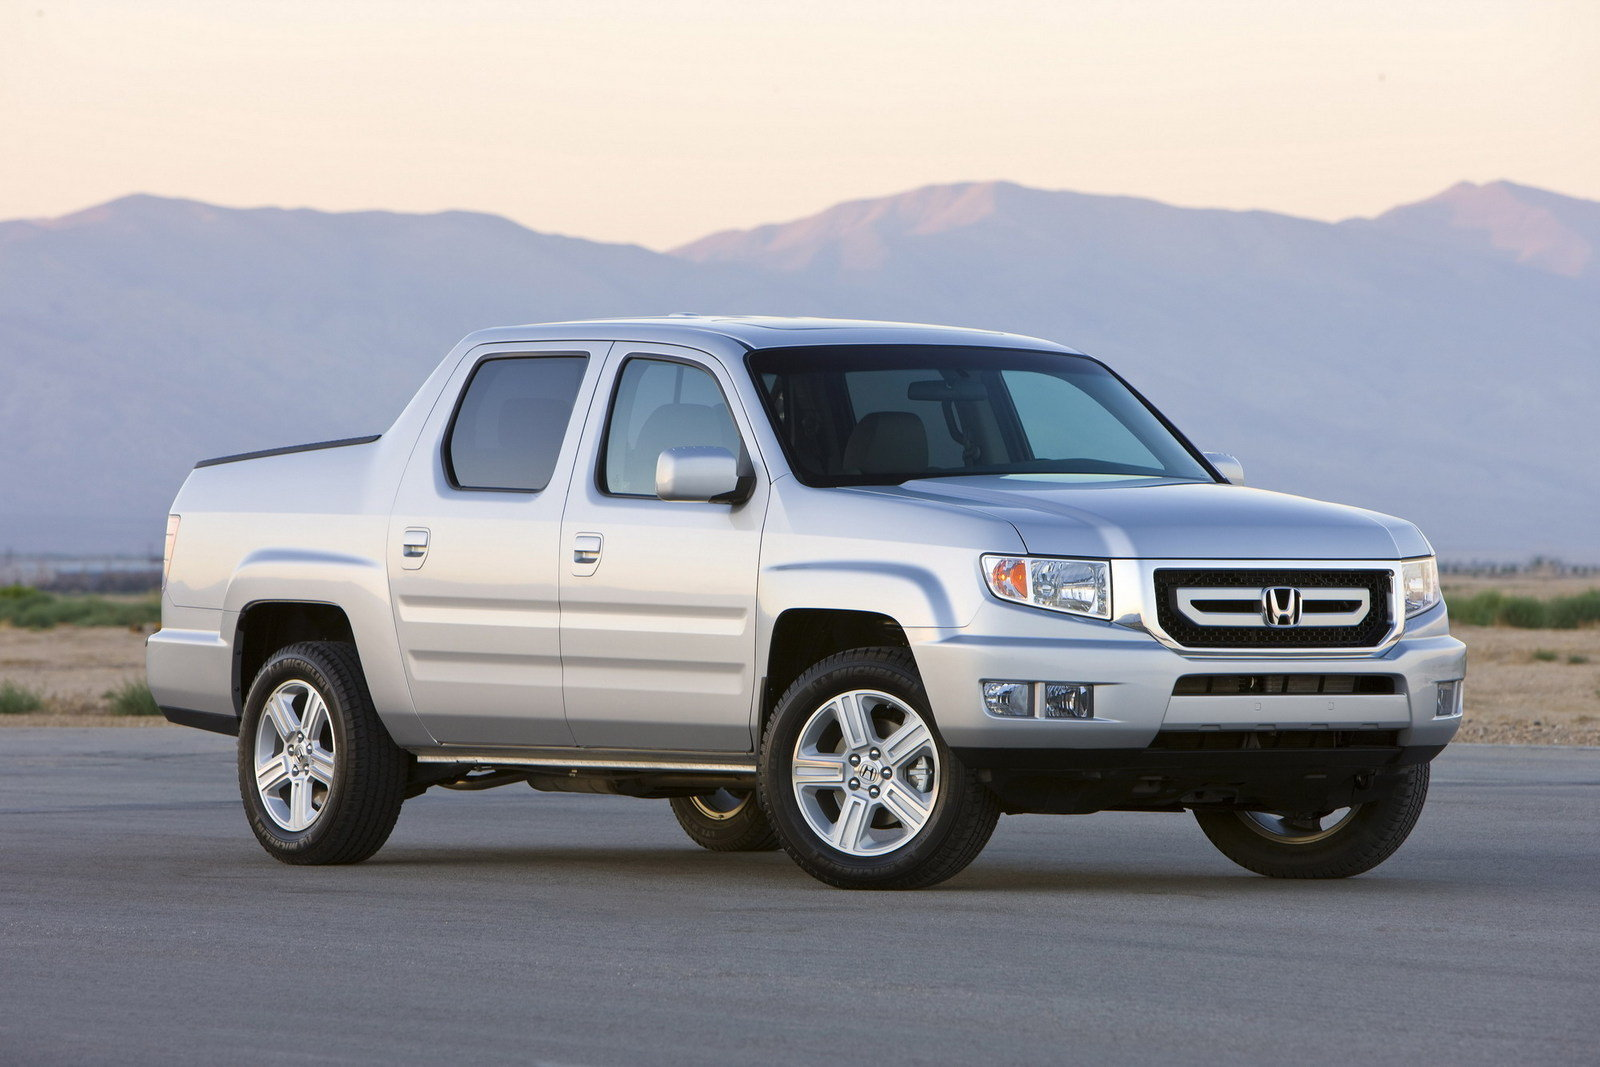 2011 honda ridgeline picture 368040 car review top speed. Black Bedroom Furniture Sets. Home Design Ideas